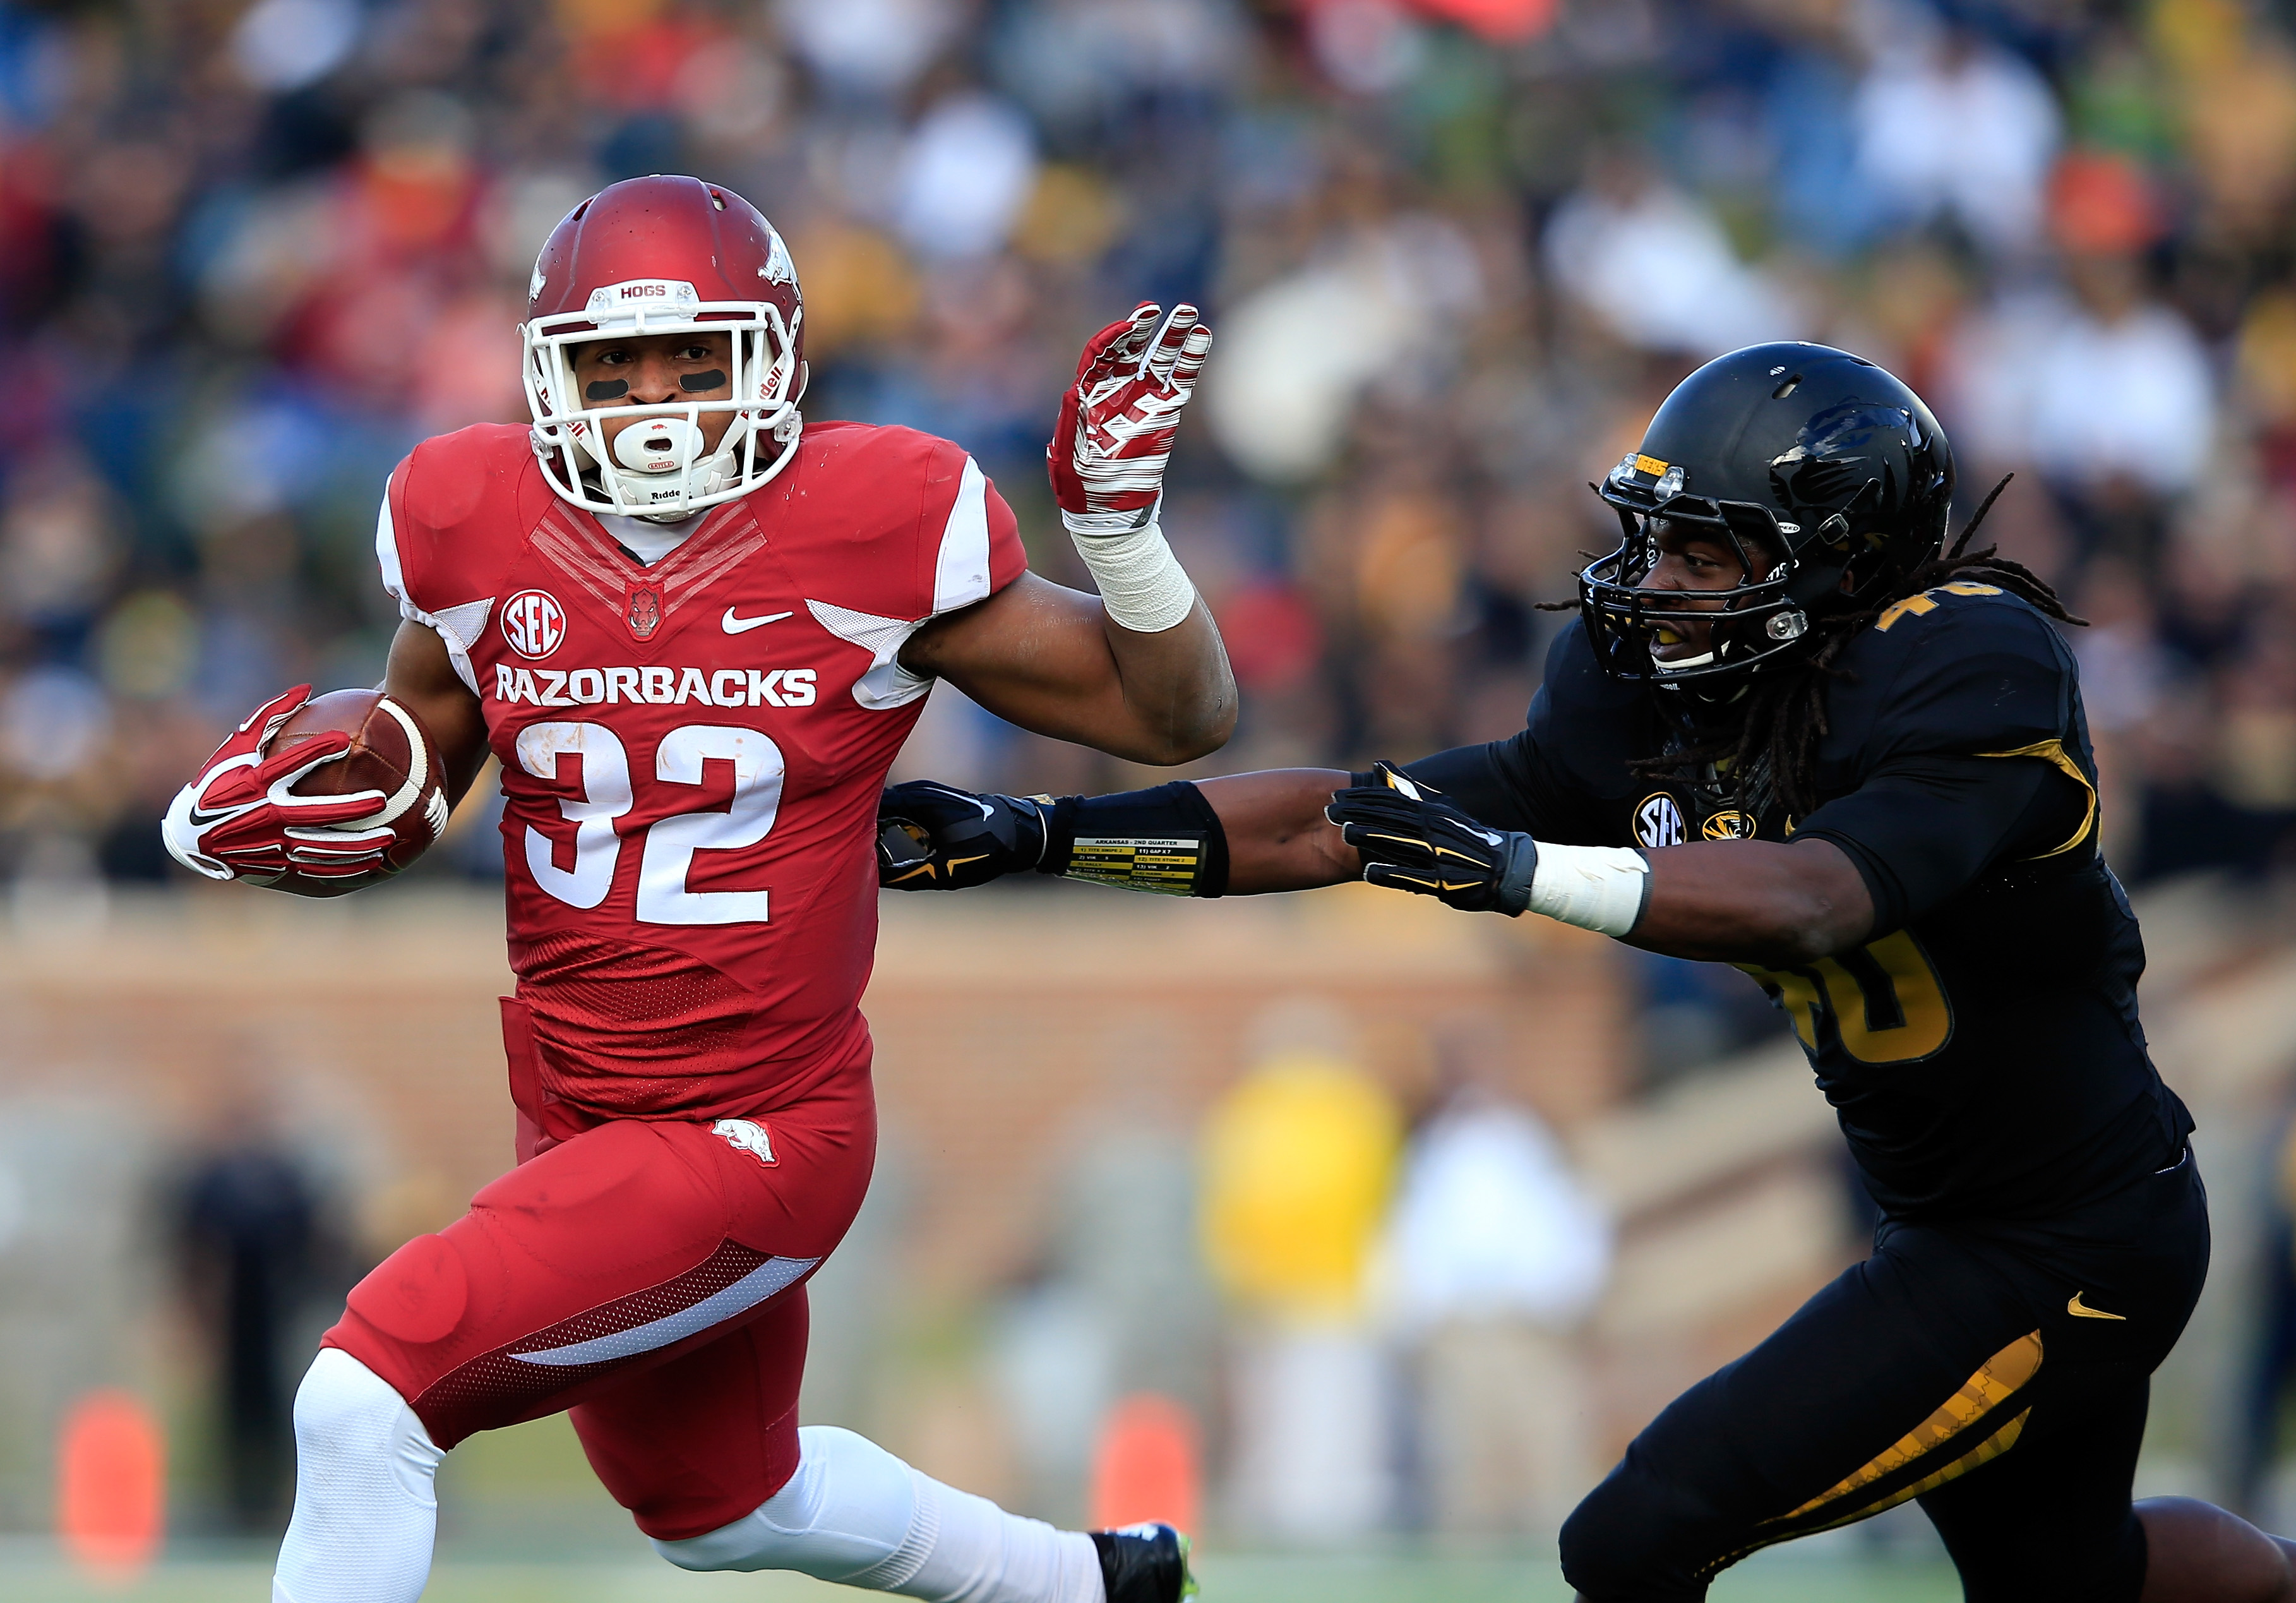 Jonathan Williams of the Arkansas Razorbacks carries the ball against Missouri on Nov. 28, 2014.  (Getty Images)